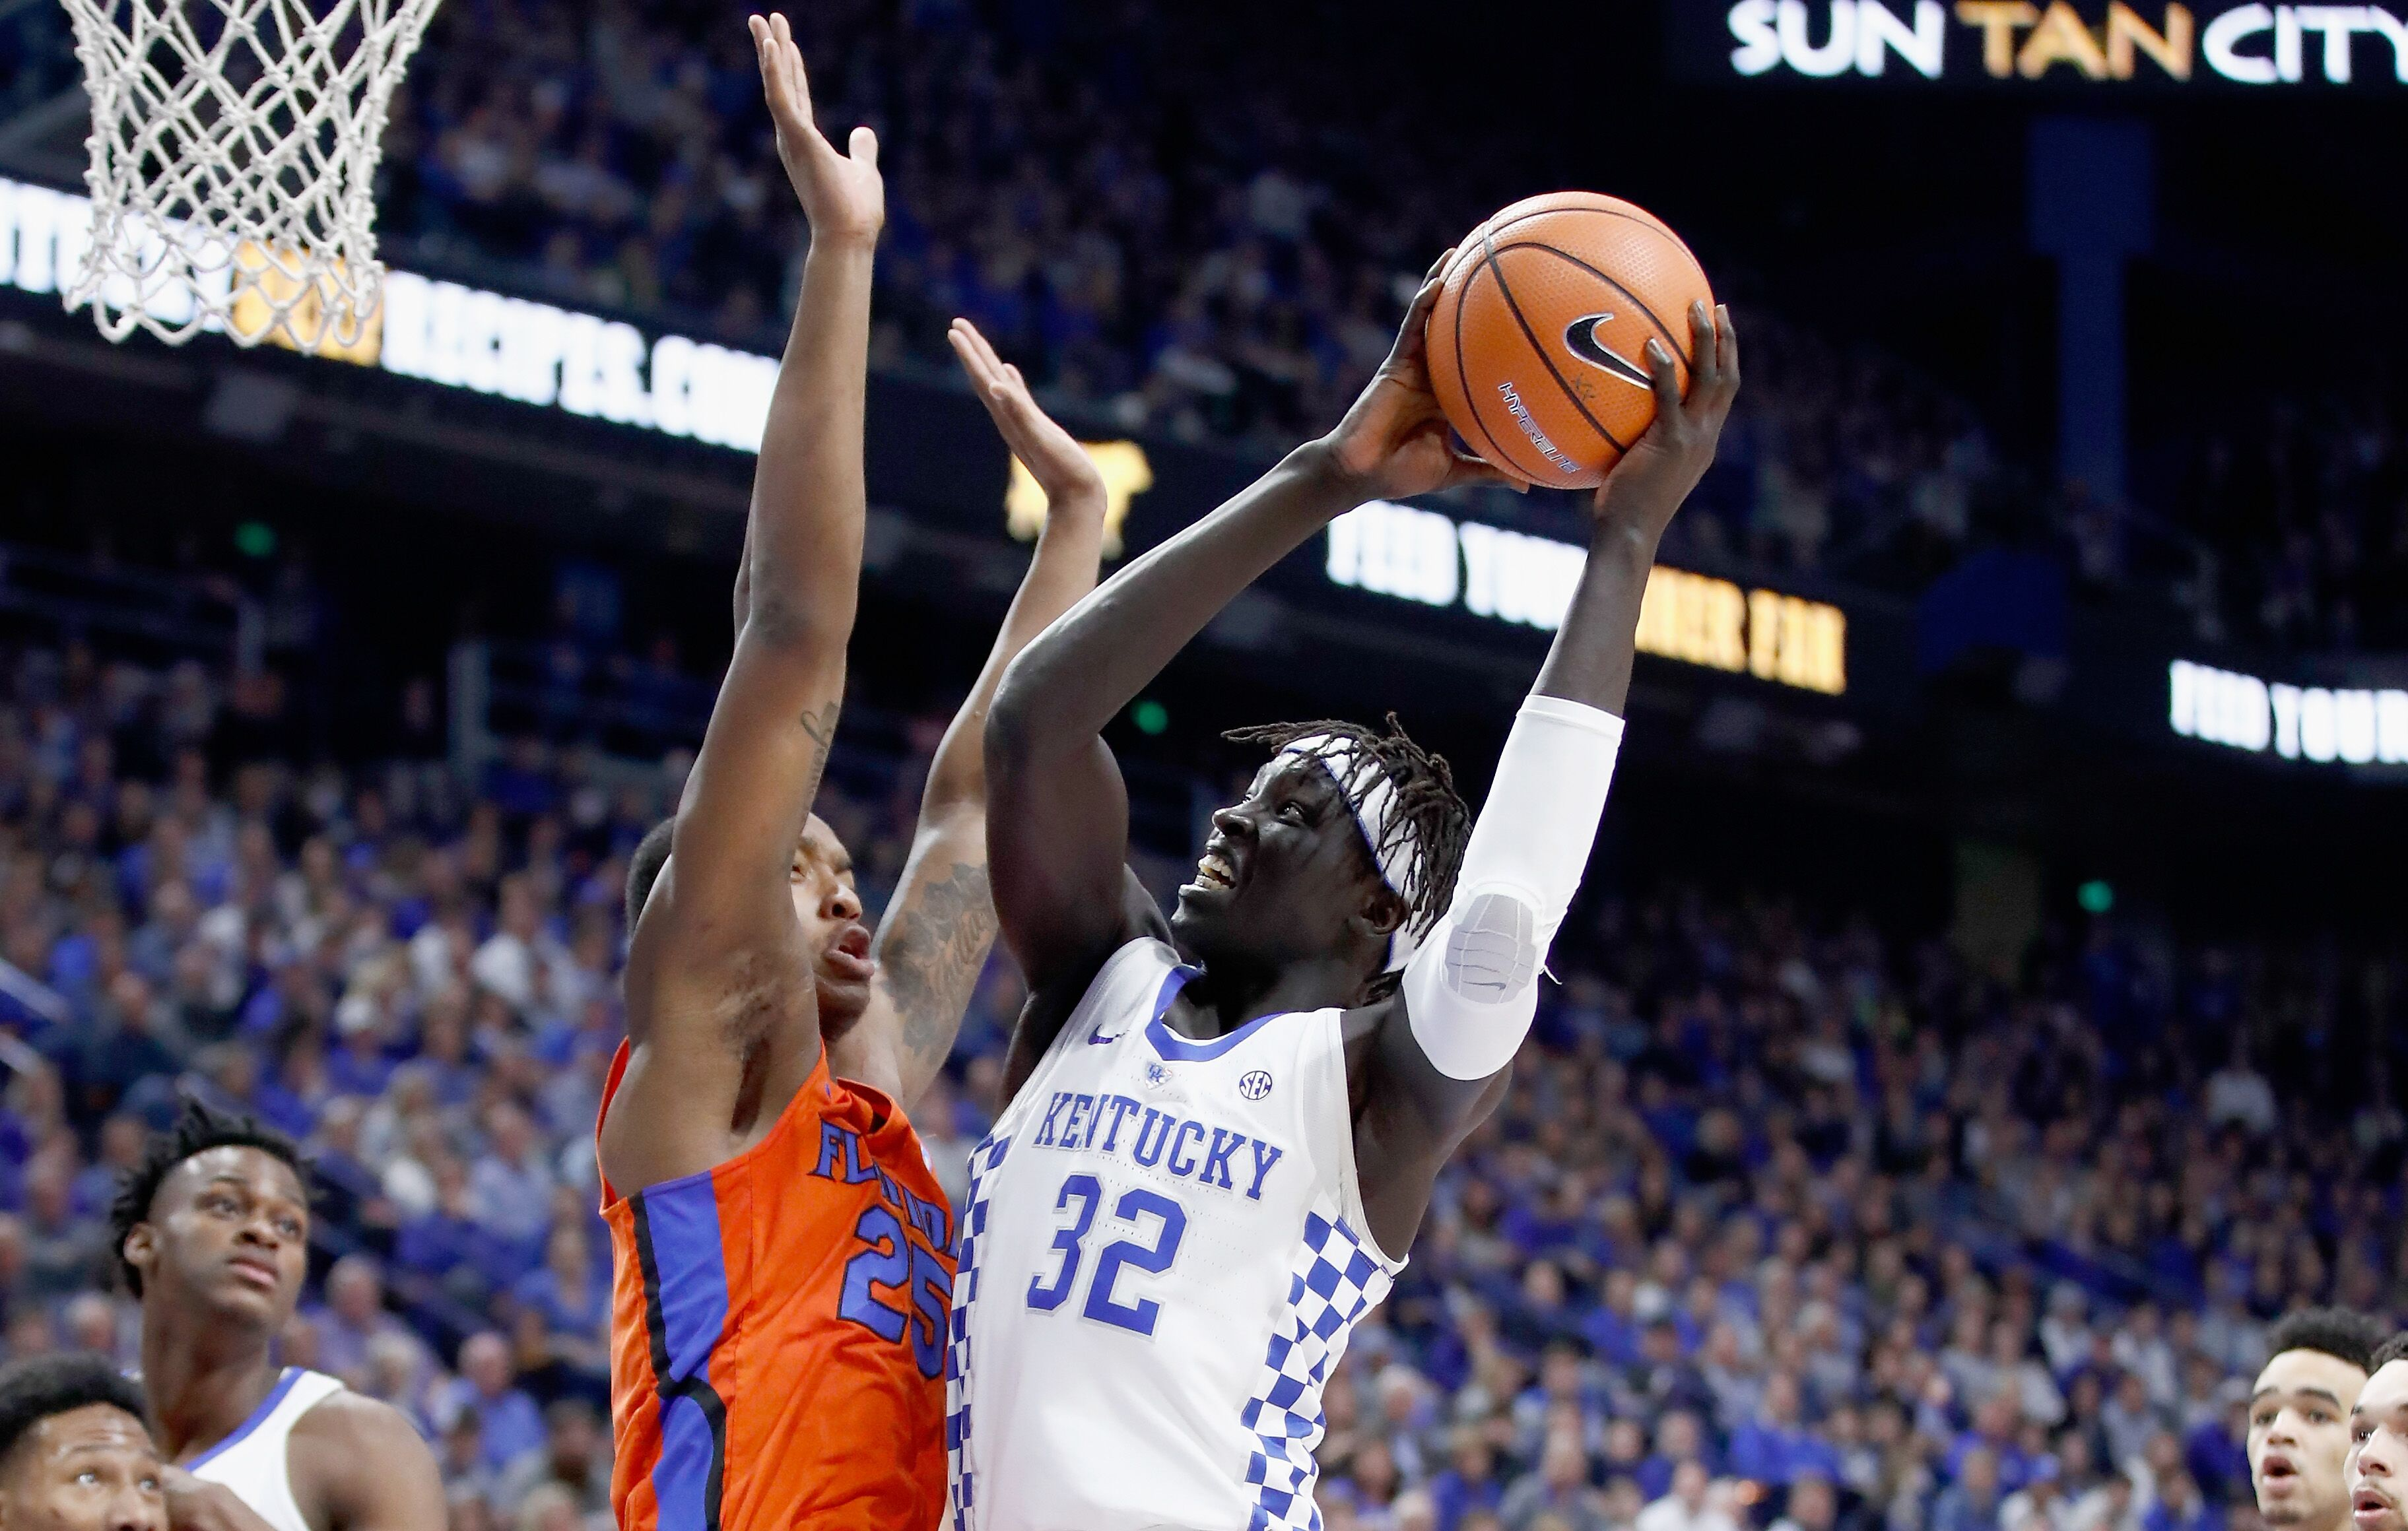 The Kentucky Basketball Team Committed Turnovers Against The Gators The Wildcats Dropped Their Second Consecutive Game With A Loss Versus Florida